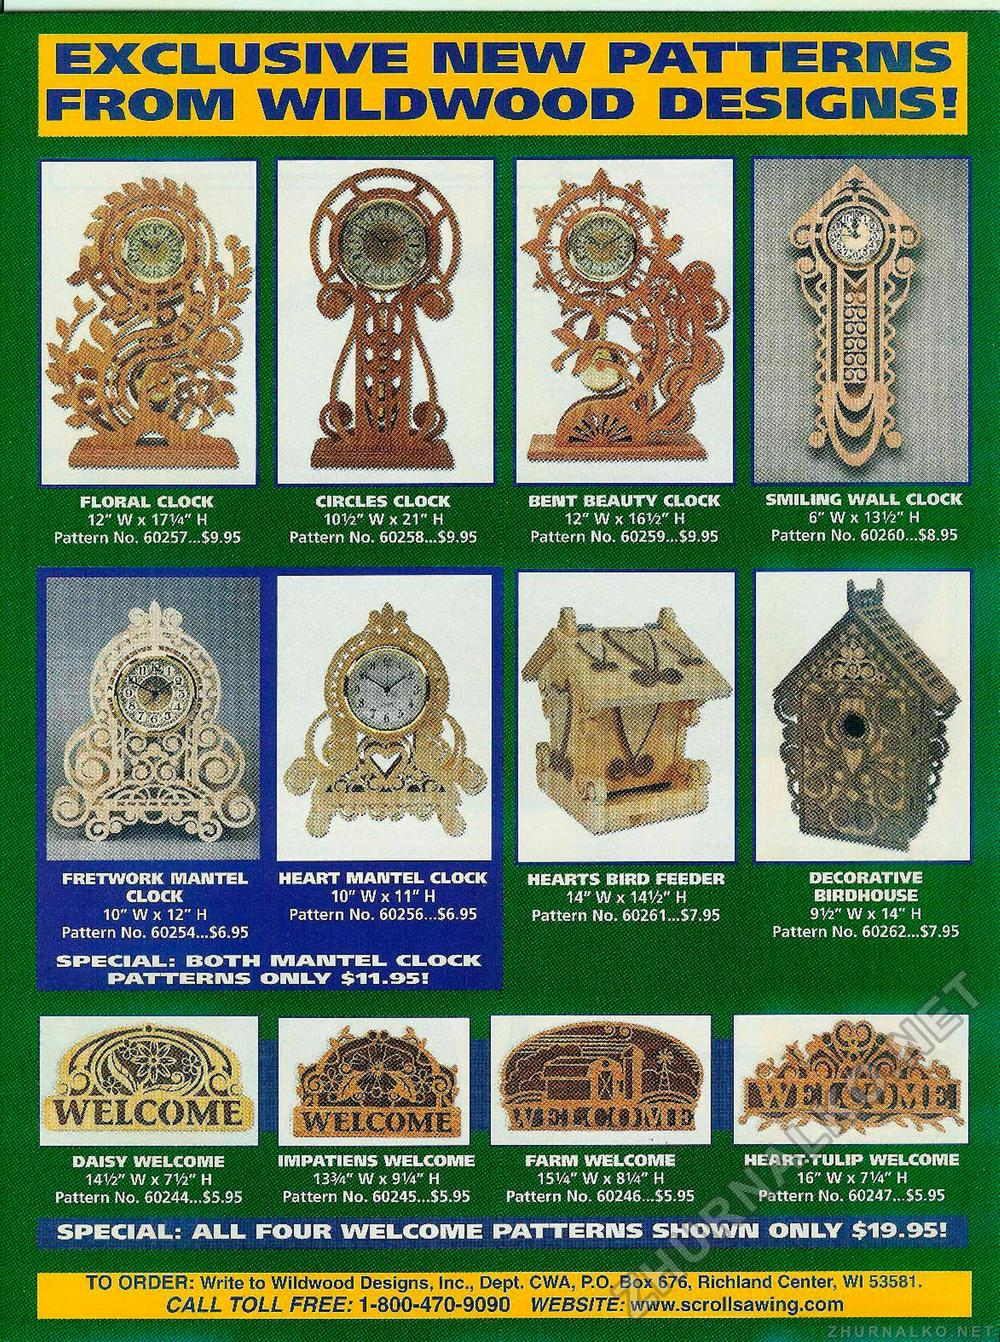 Creative Woodworks & crafts 2002-06, страница 9